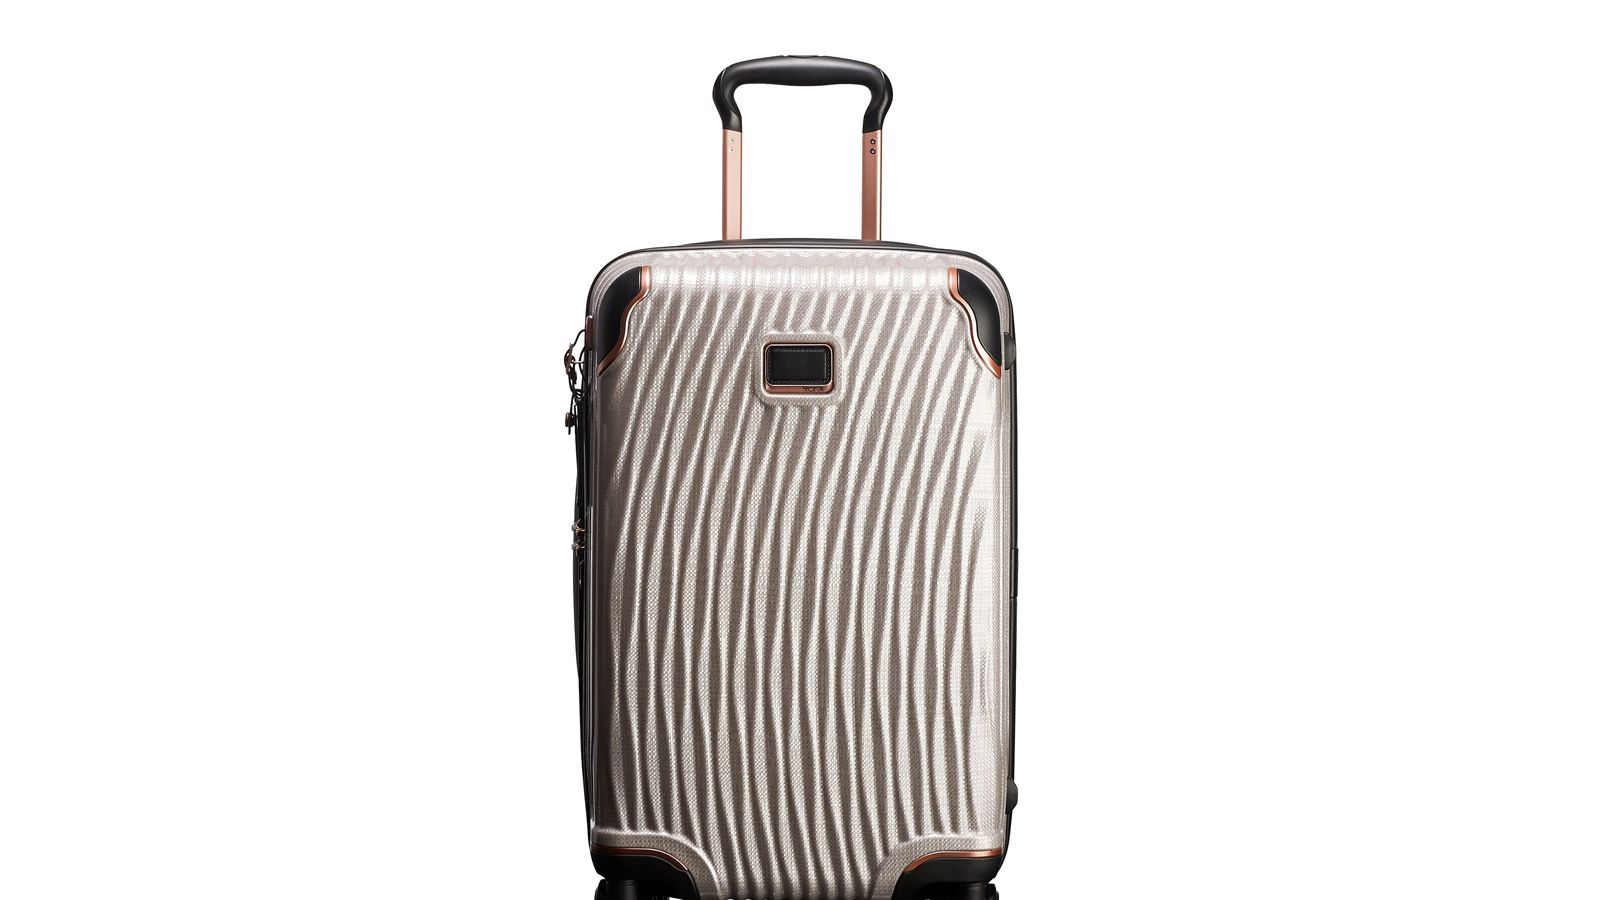 Most Durable Carry-on: Tumi Latitude International Carry-on